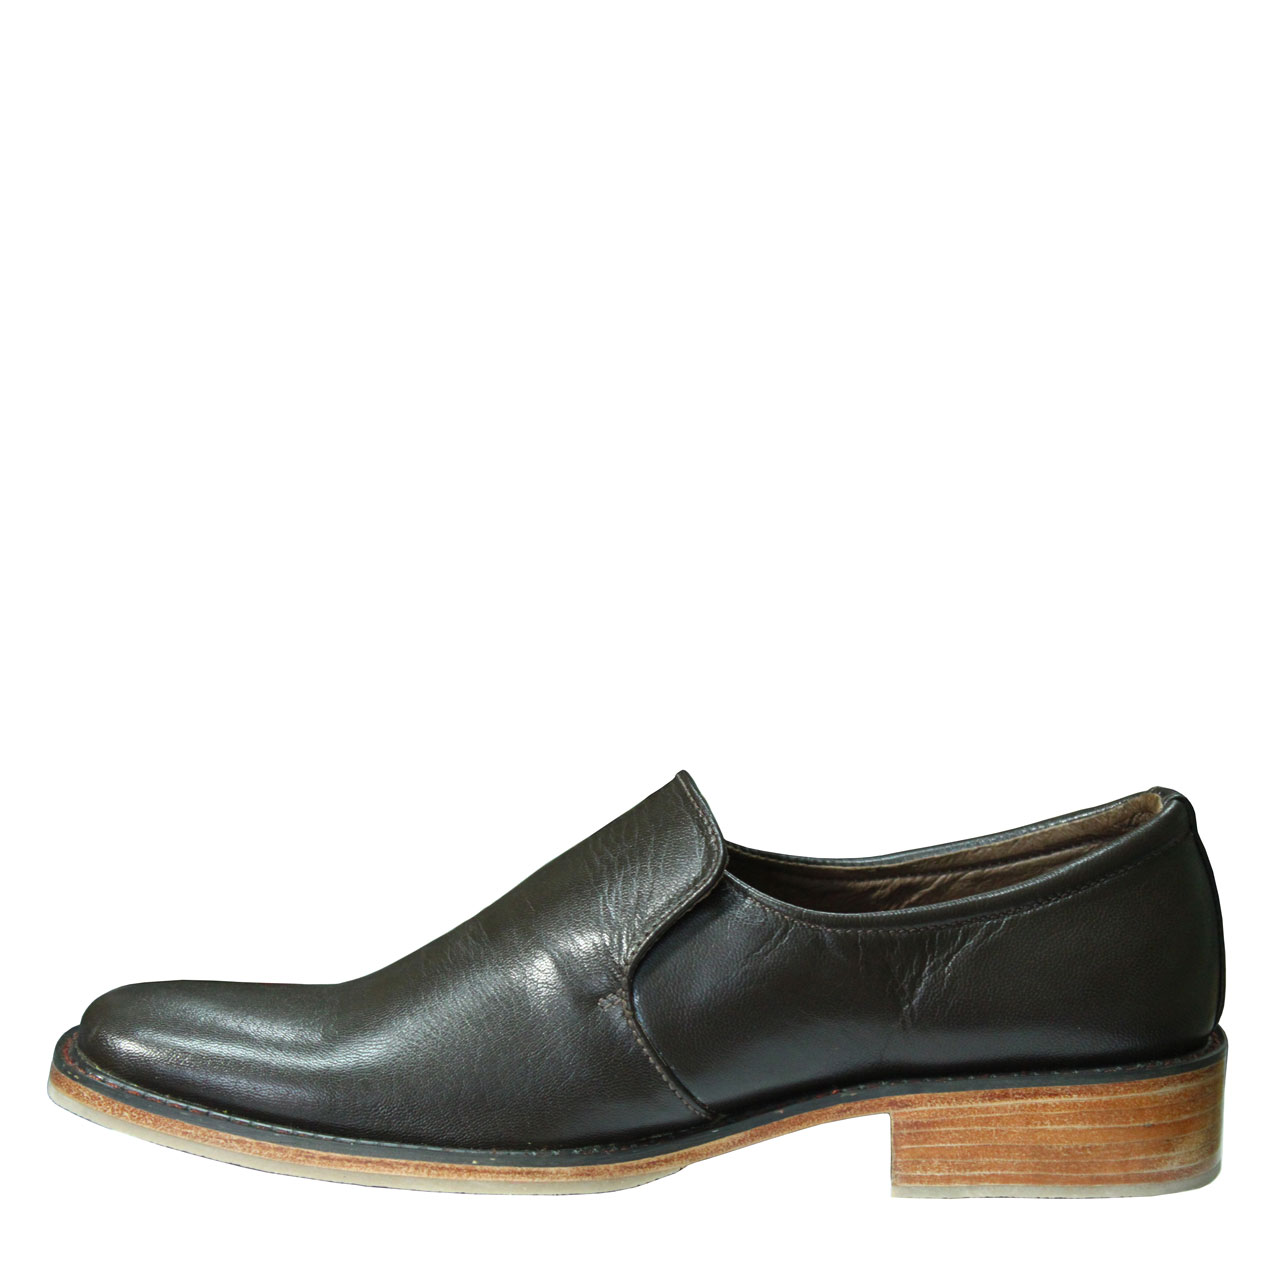 Cow Leather Shoes B870a